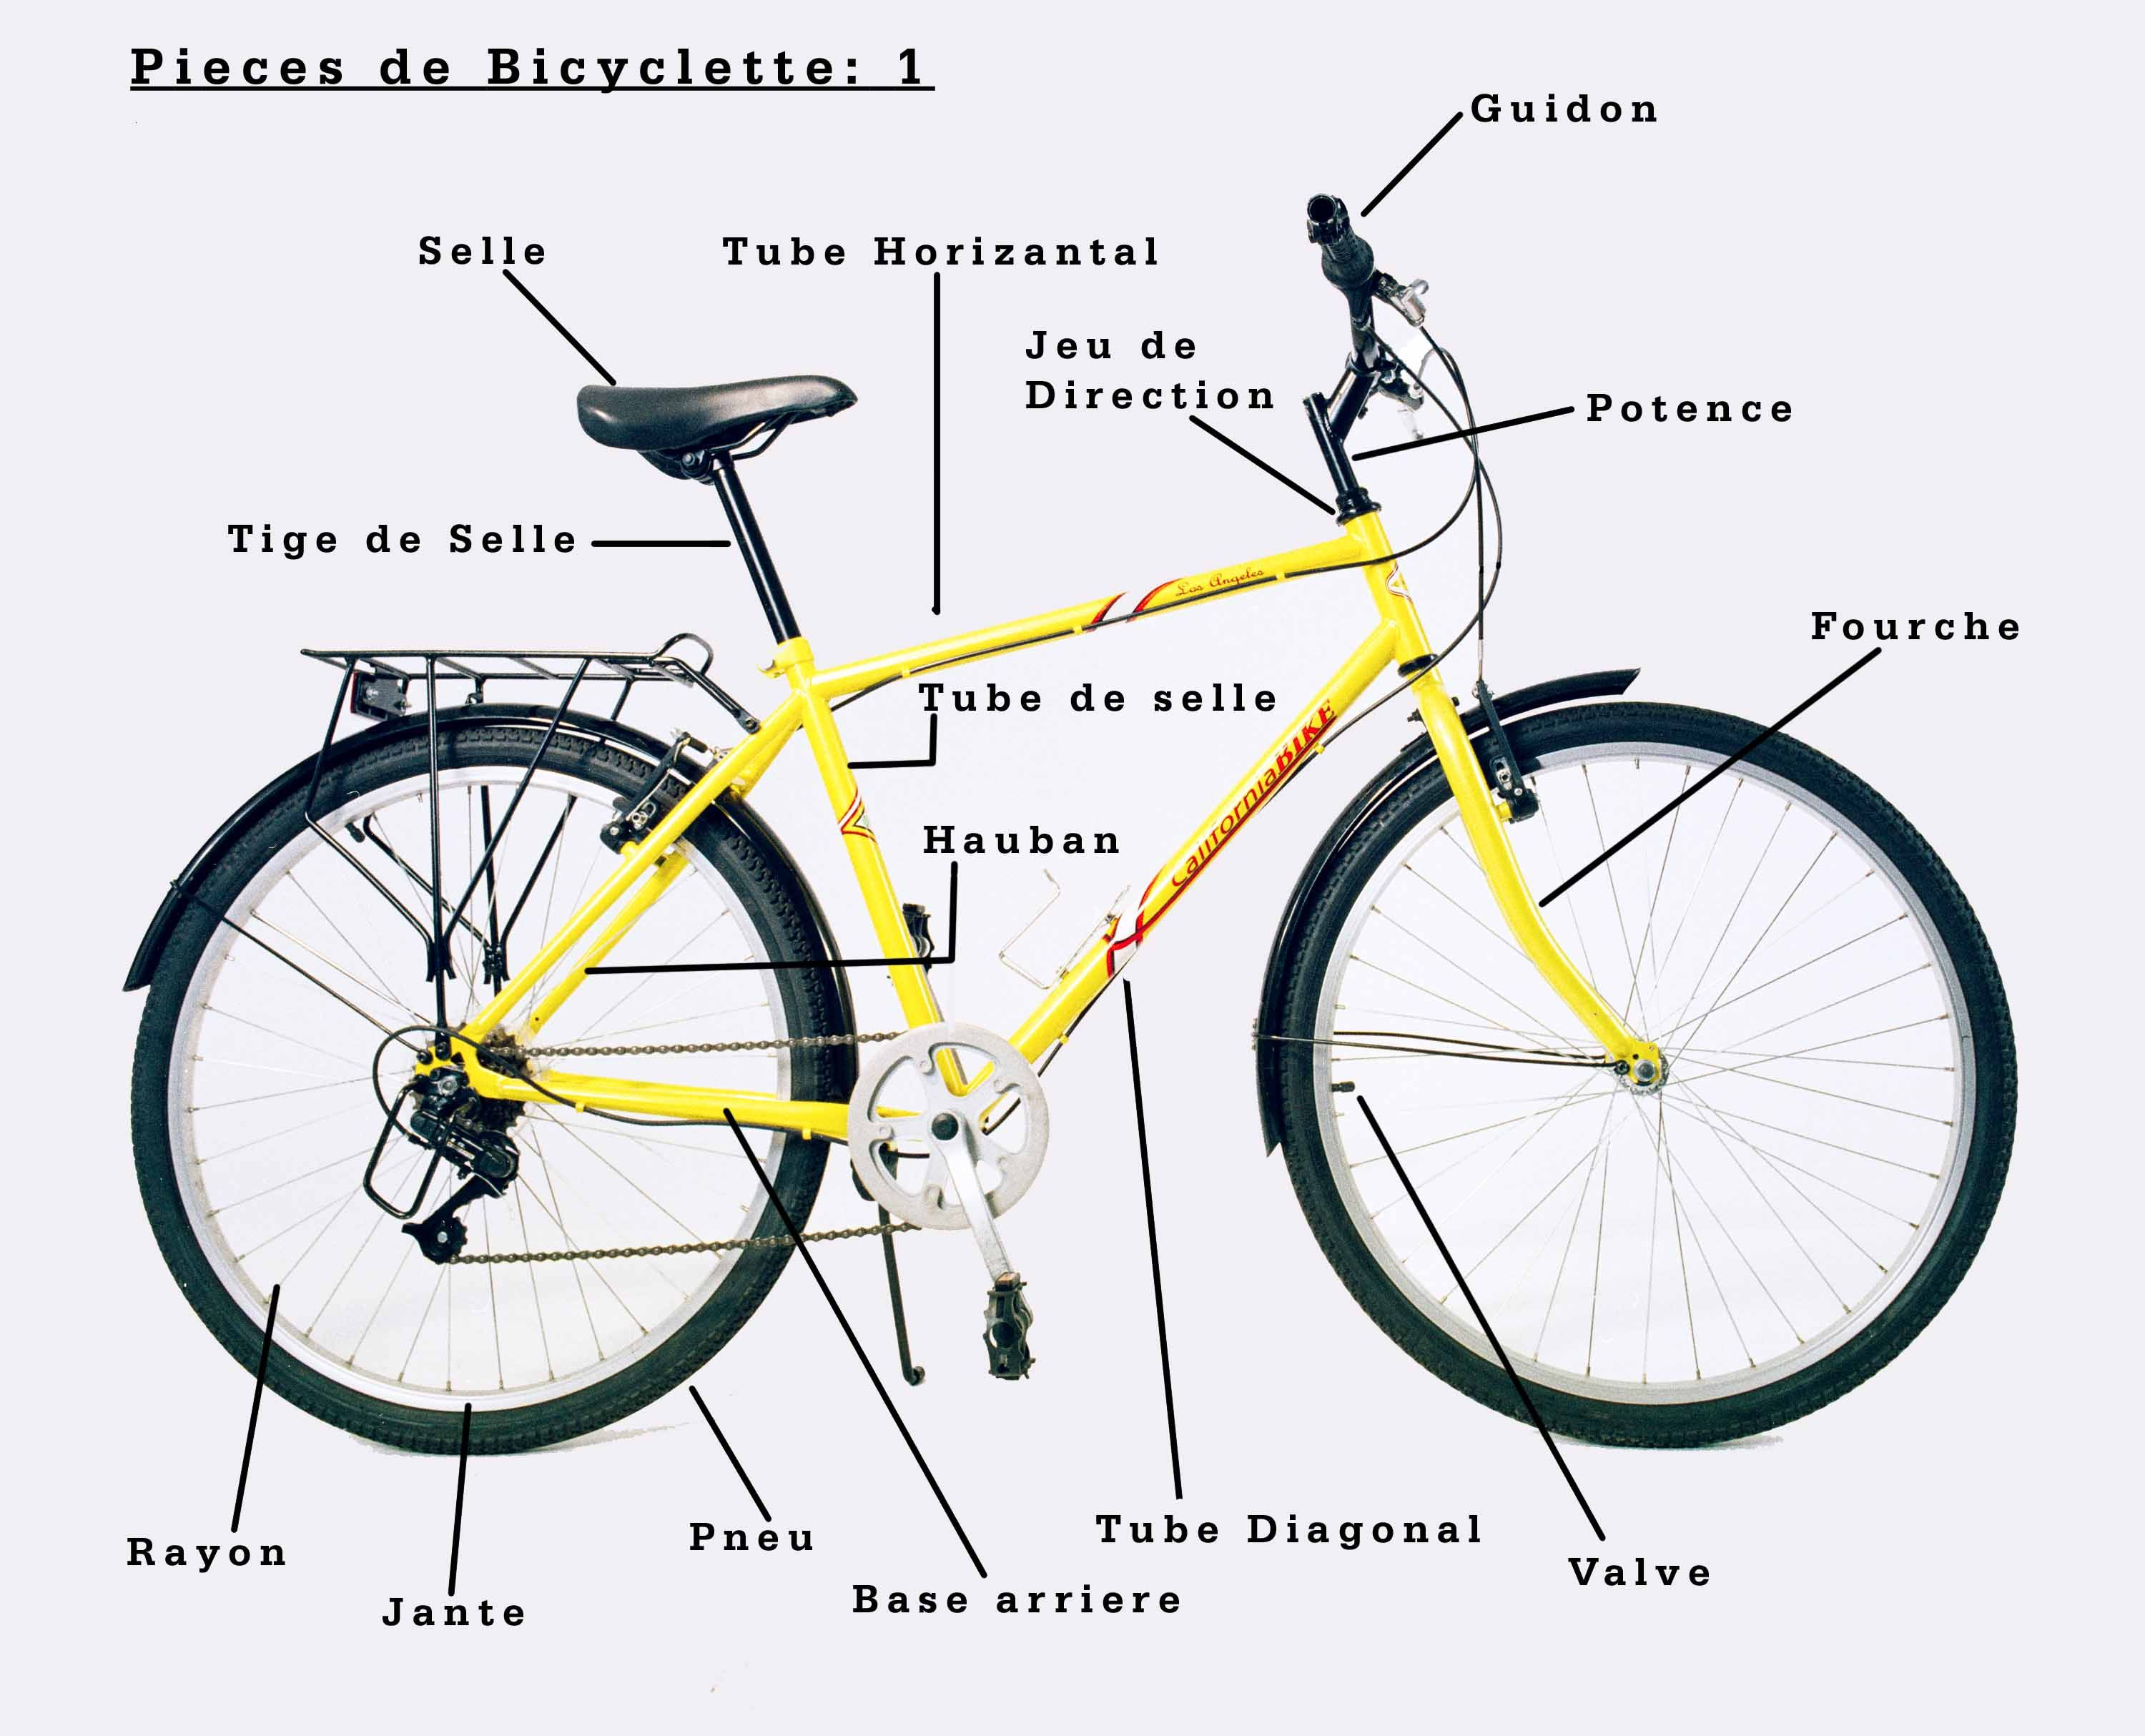 Bicycle Parts Name In French Diagram Bicycle Bicycle Parts